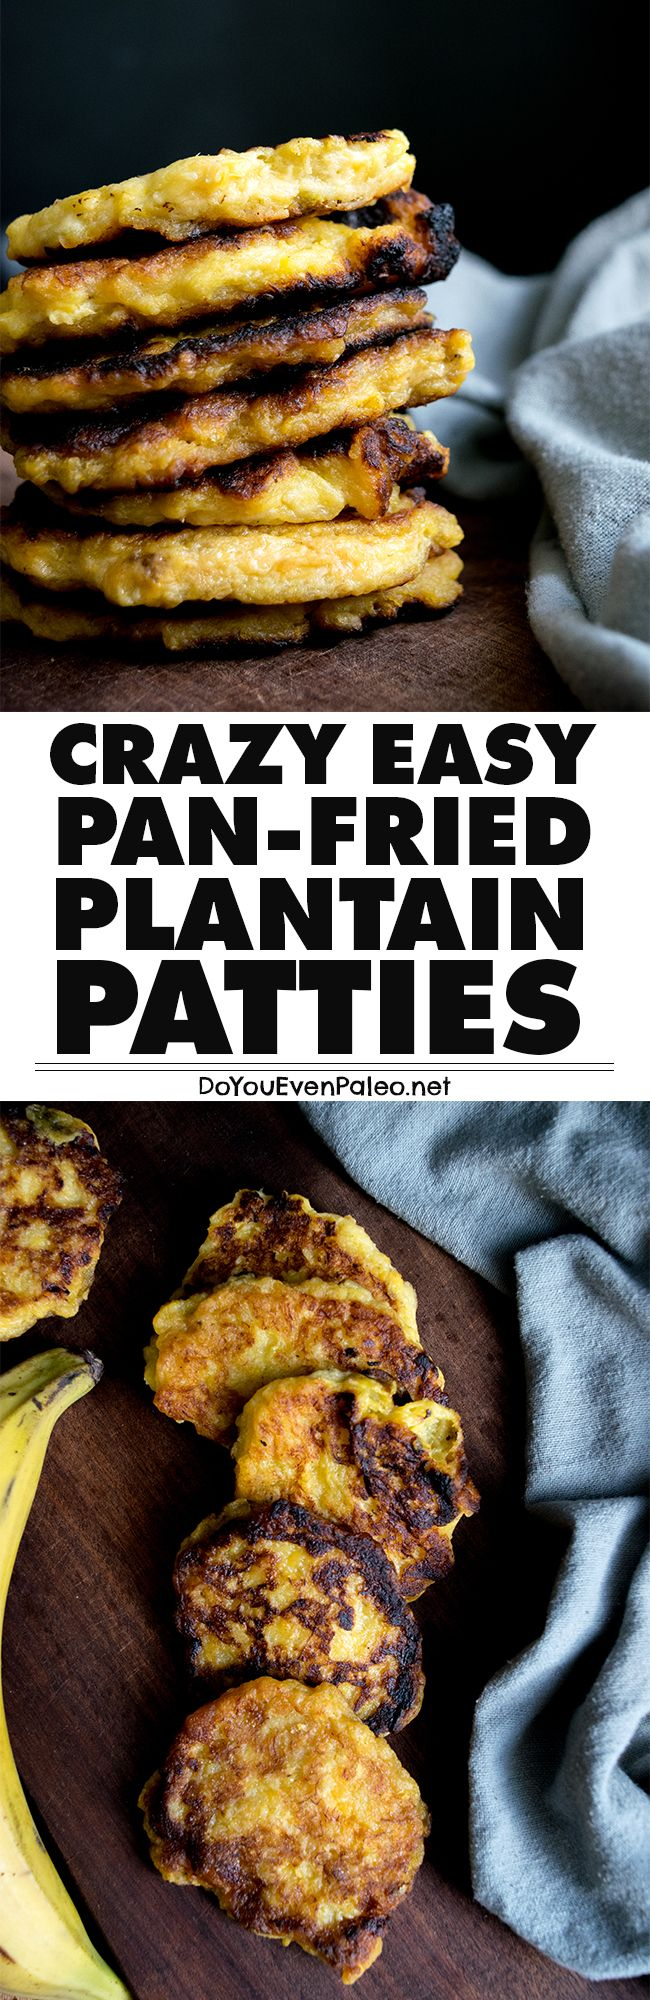 Have some overripe plantains? Whip up these pan-fried plantain patties for a fuss-free solution! Gluten free, paleo, and vegan. | DoYouEvenPaleo.net